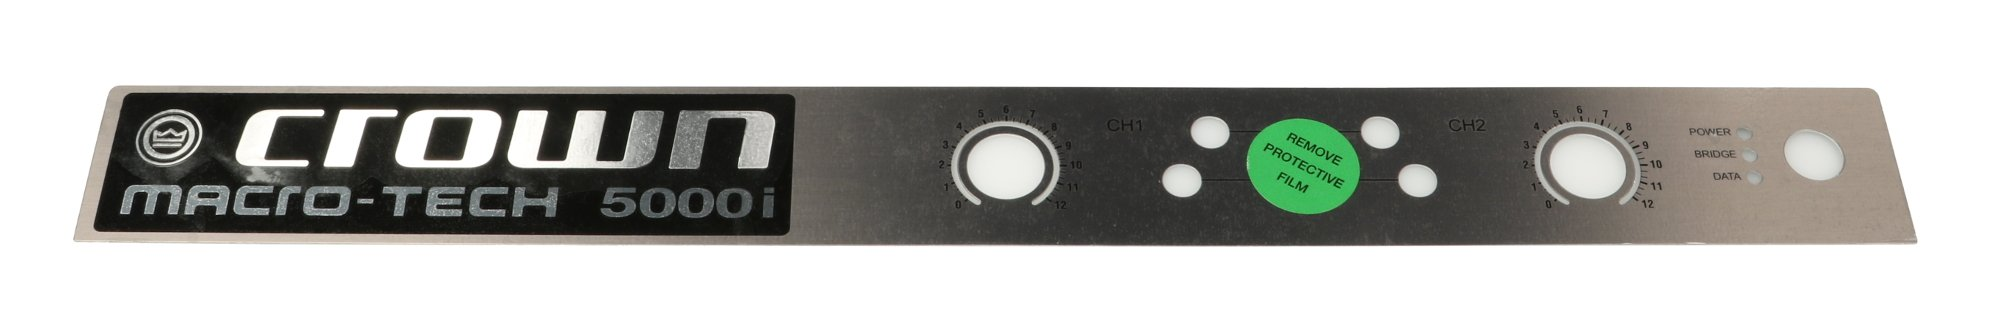 Face Plate for MA-5000i